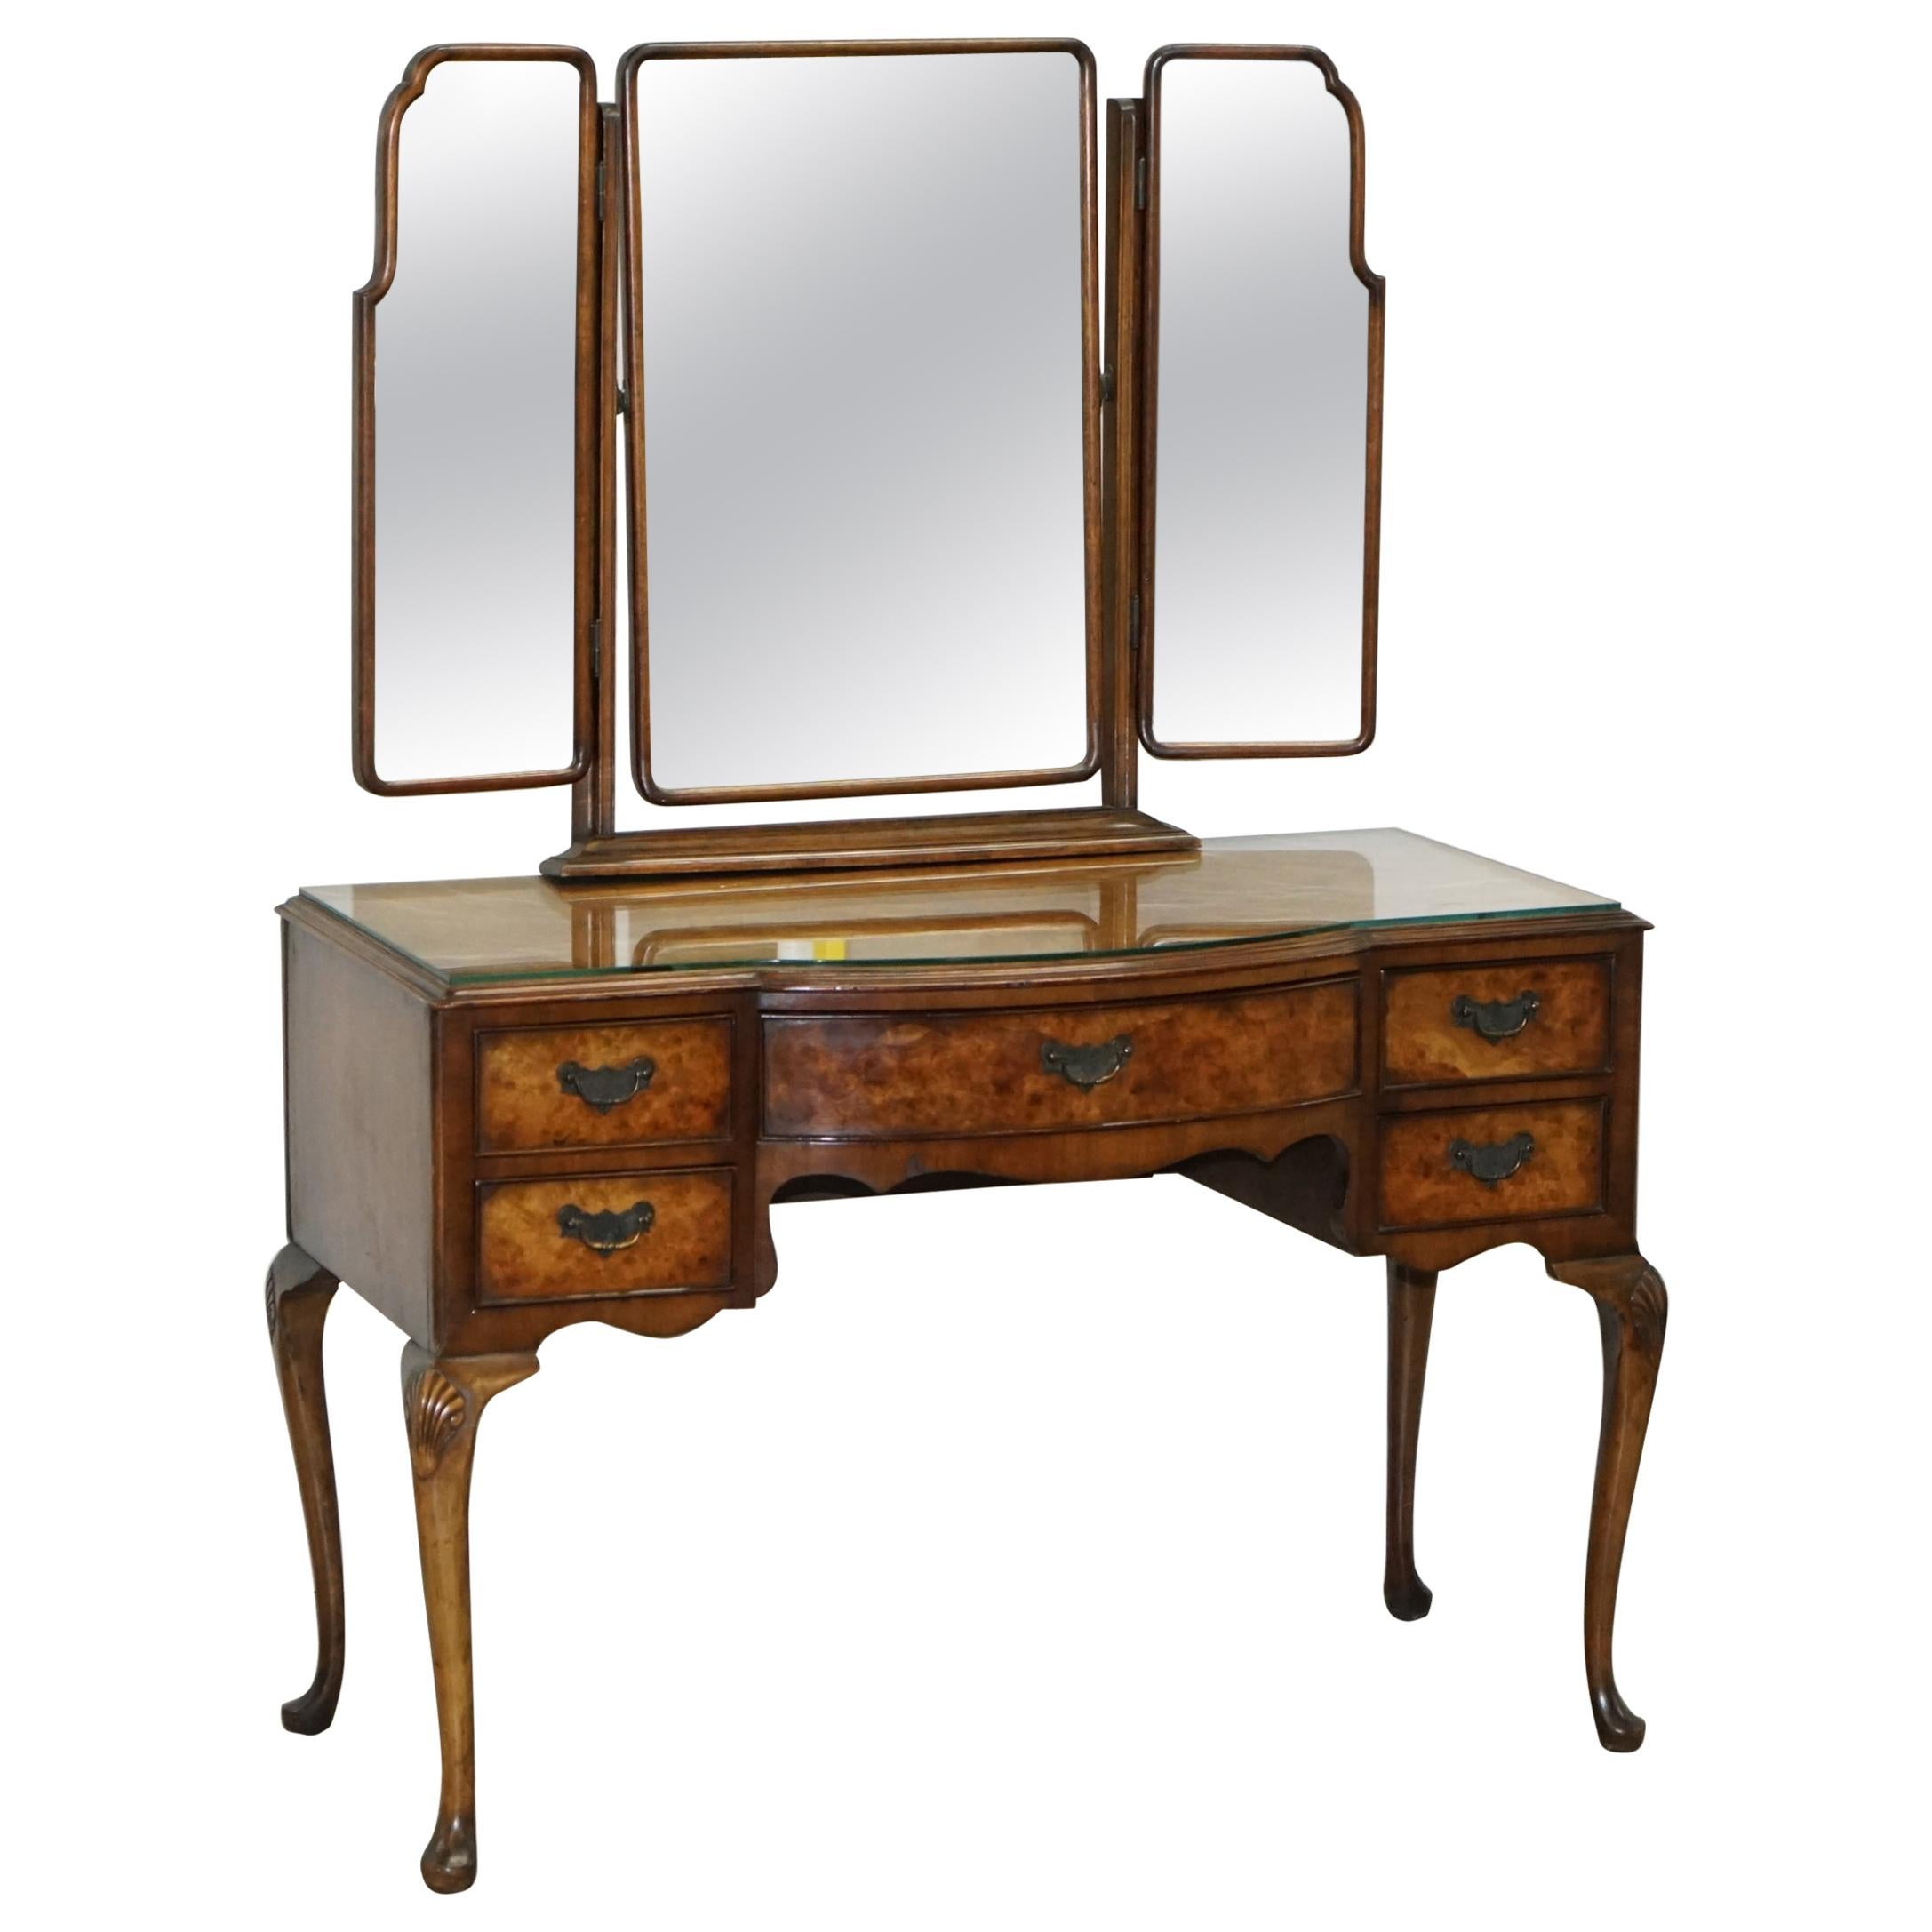 Burr & Burl Walnut Dressing Table with Trifold Mirrors & Glass Top, circa 1930s